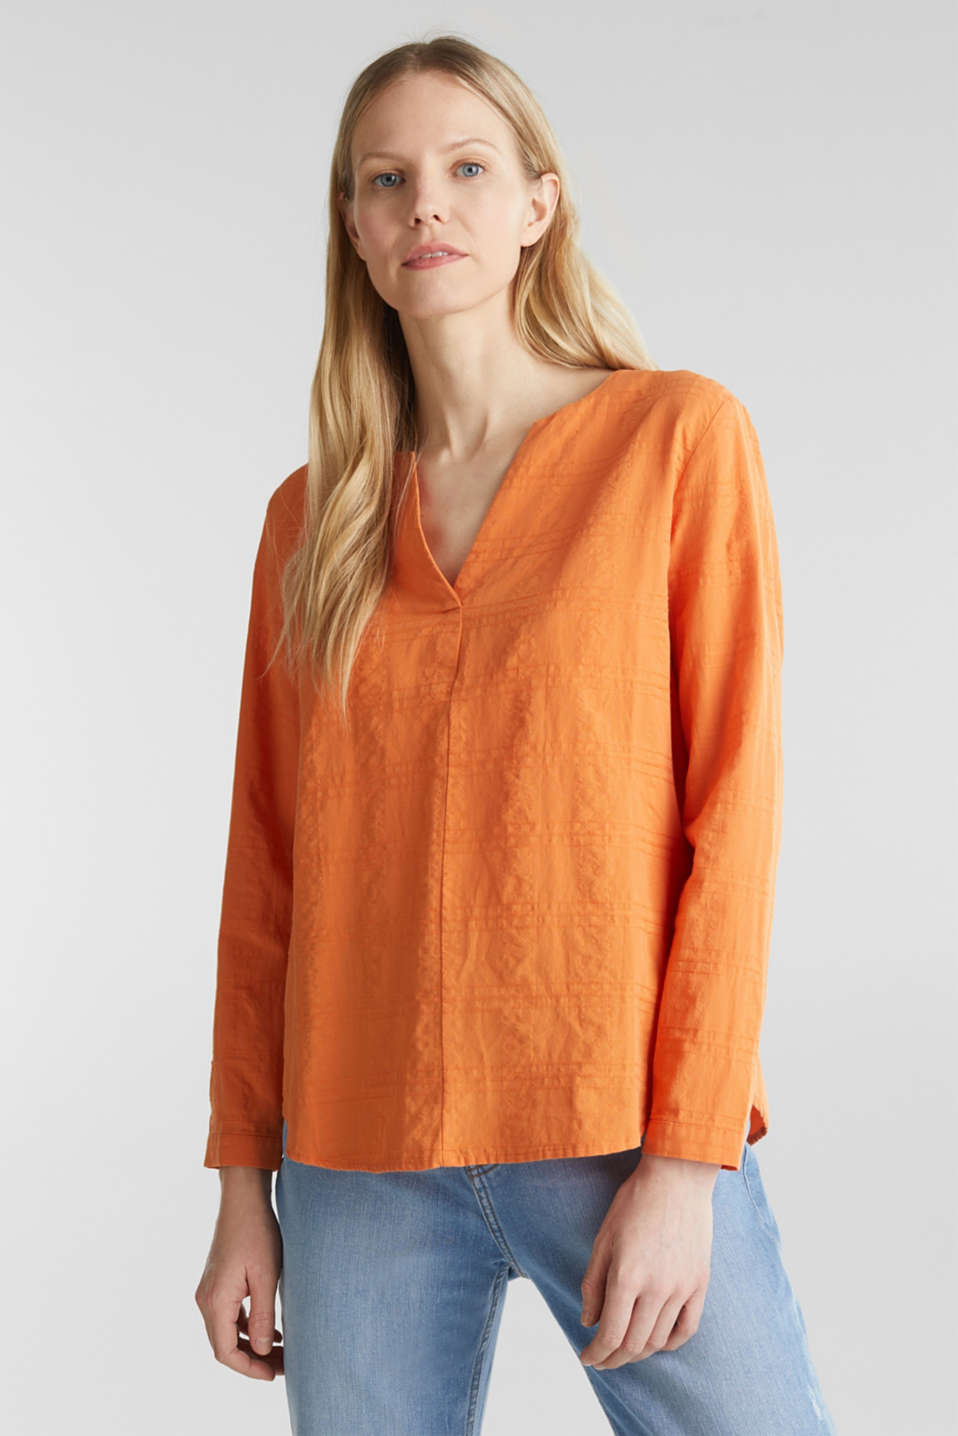 Textured blouse, 100% cotton, RUST ORANGE, detail image number 0